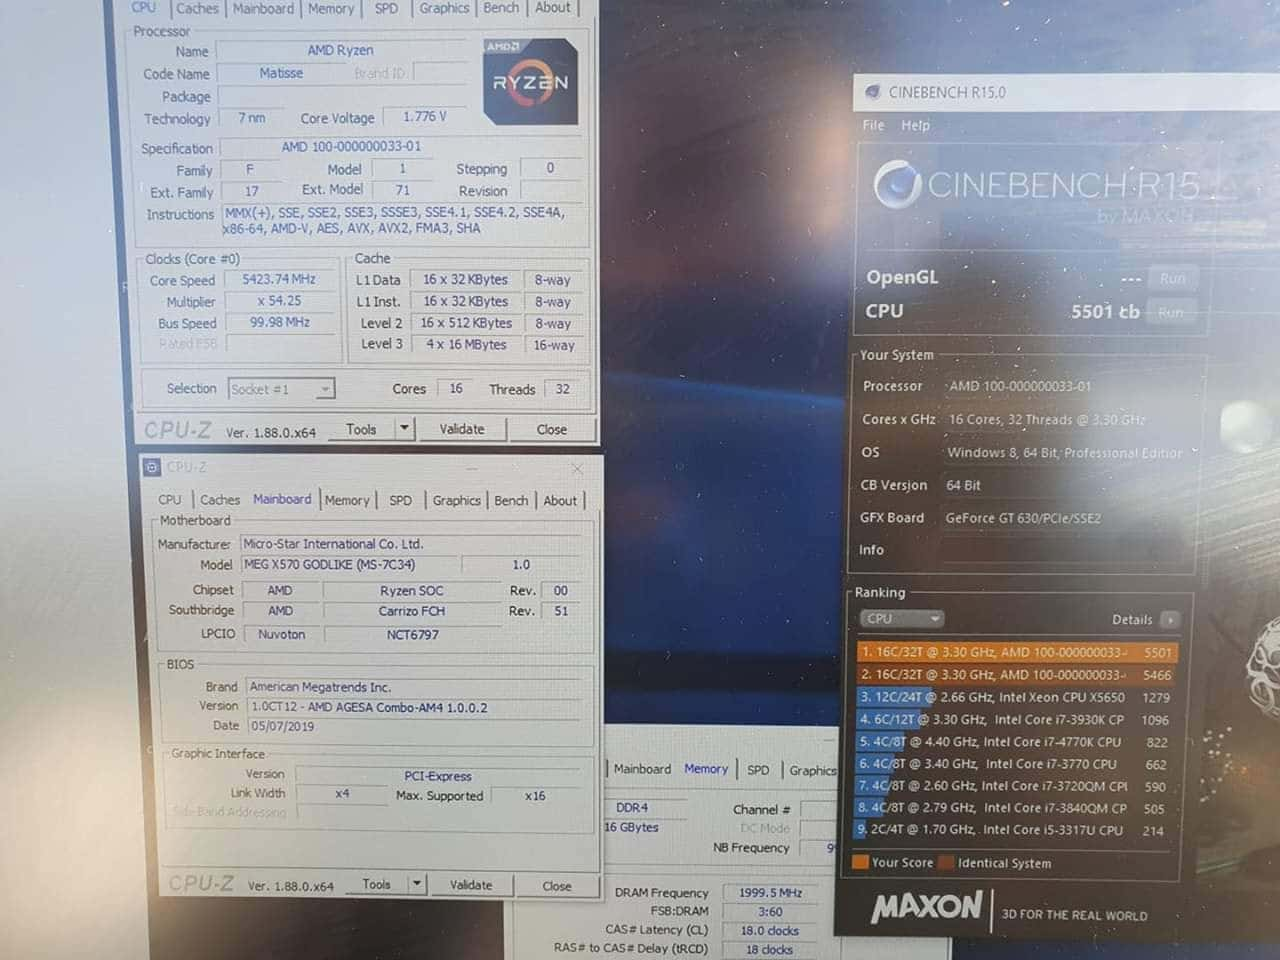 AMD Ryzen 9 3950X Cinebench R15